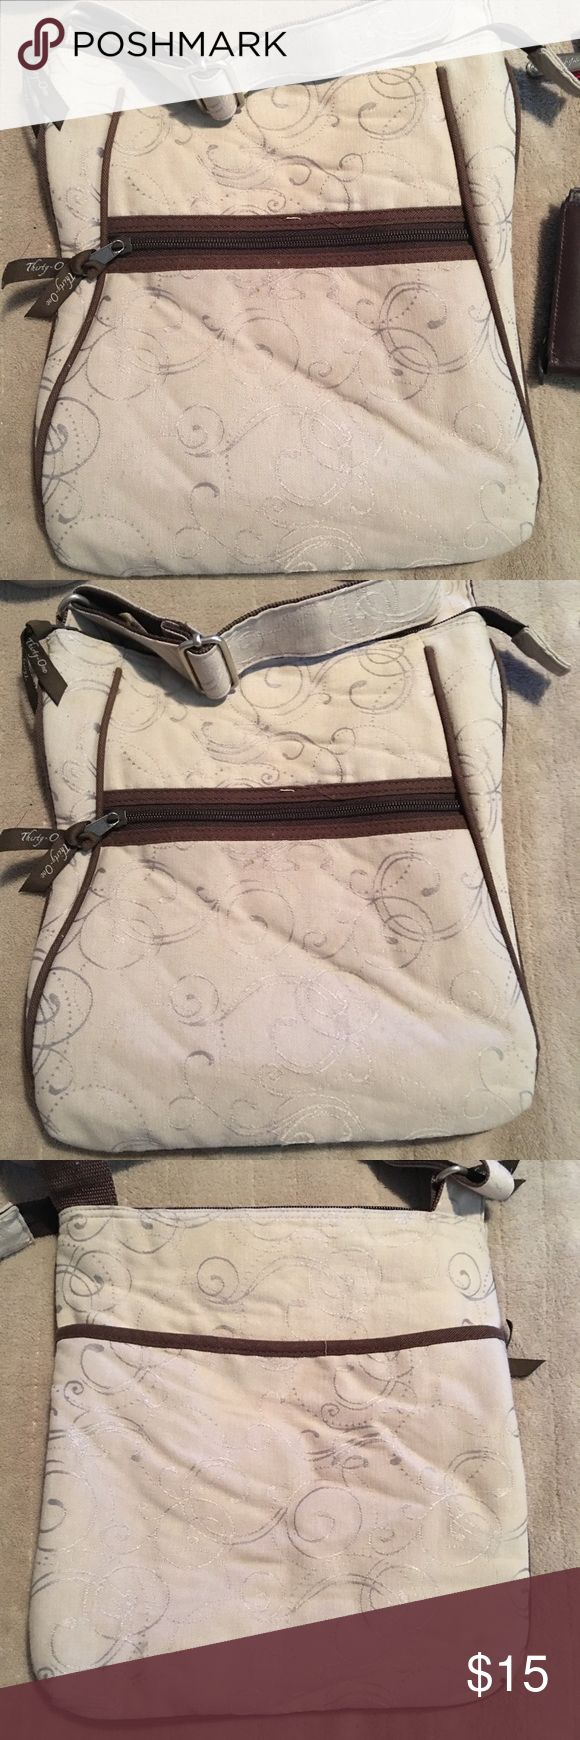 Thirty one crossbody bag Thirty one crossbody bag in beige/tan color. thirty one Bags Crossbody Bags